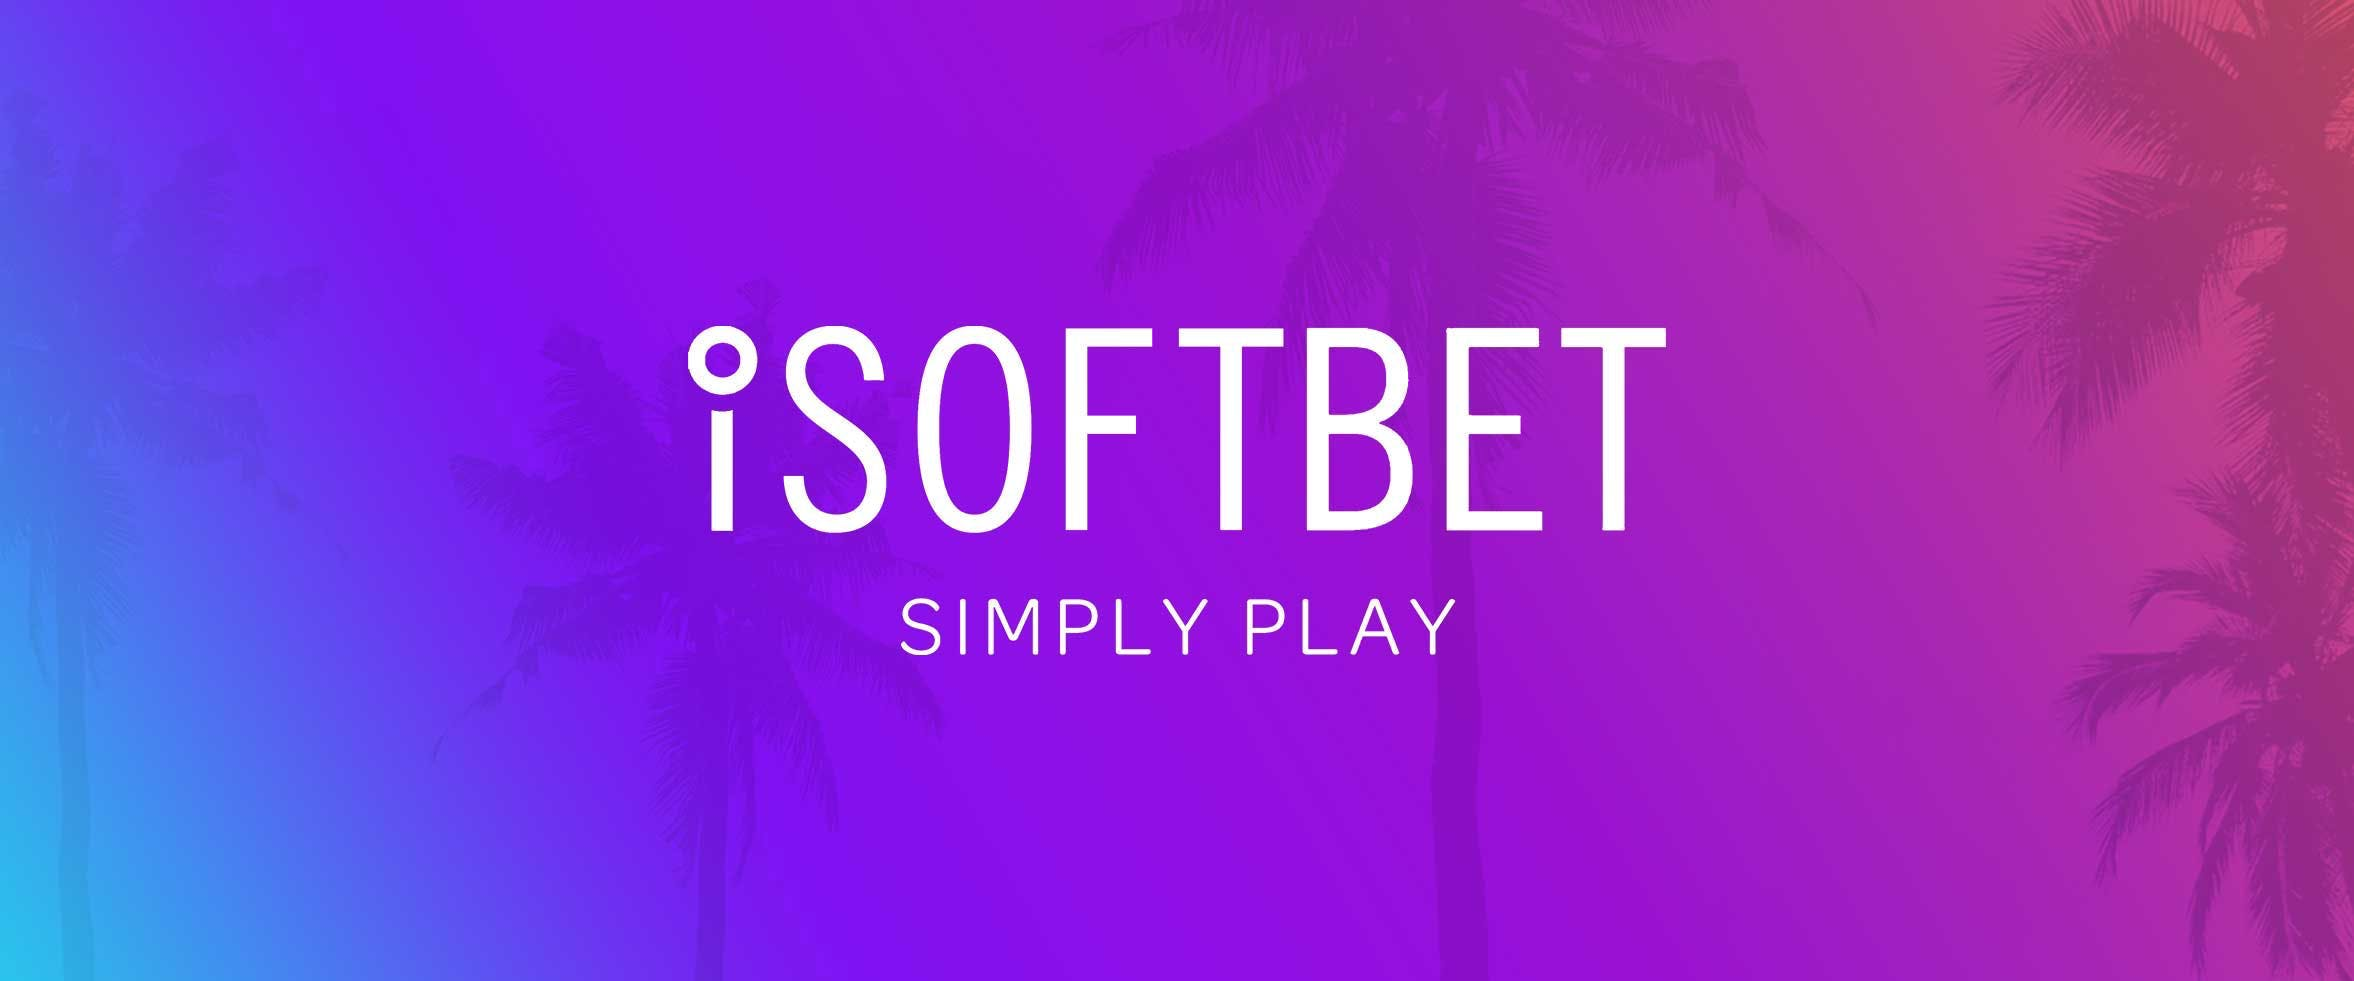 isoftbet simply play banner